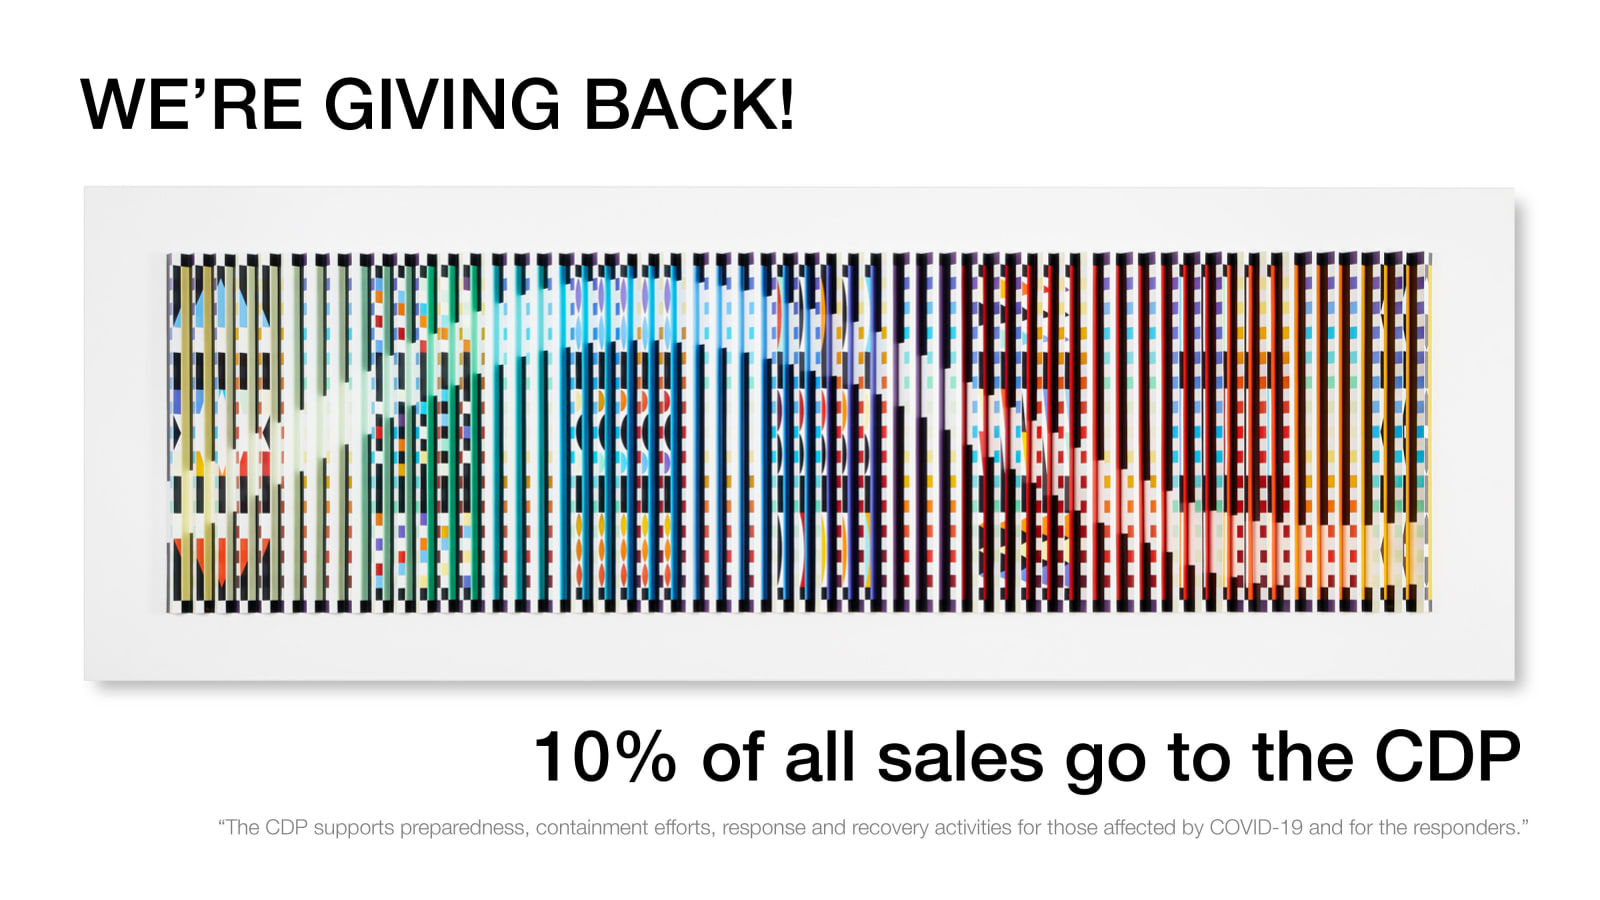 Ai Bo gives back, 10% of all sales go to CDP